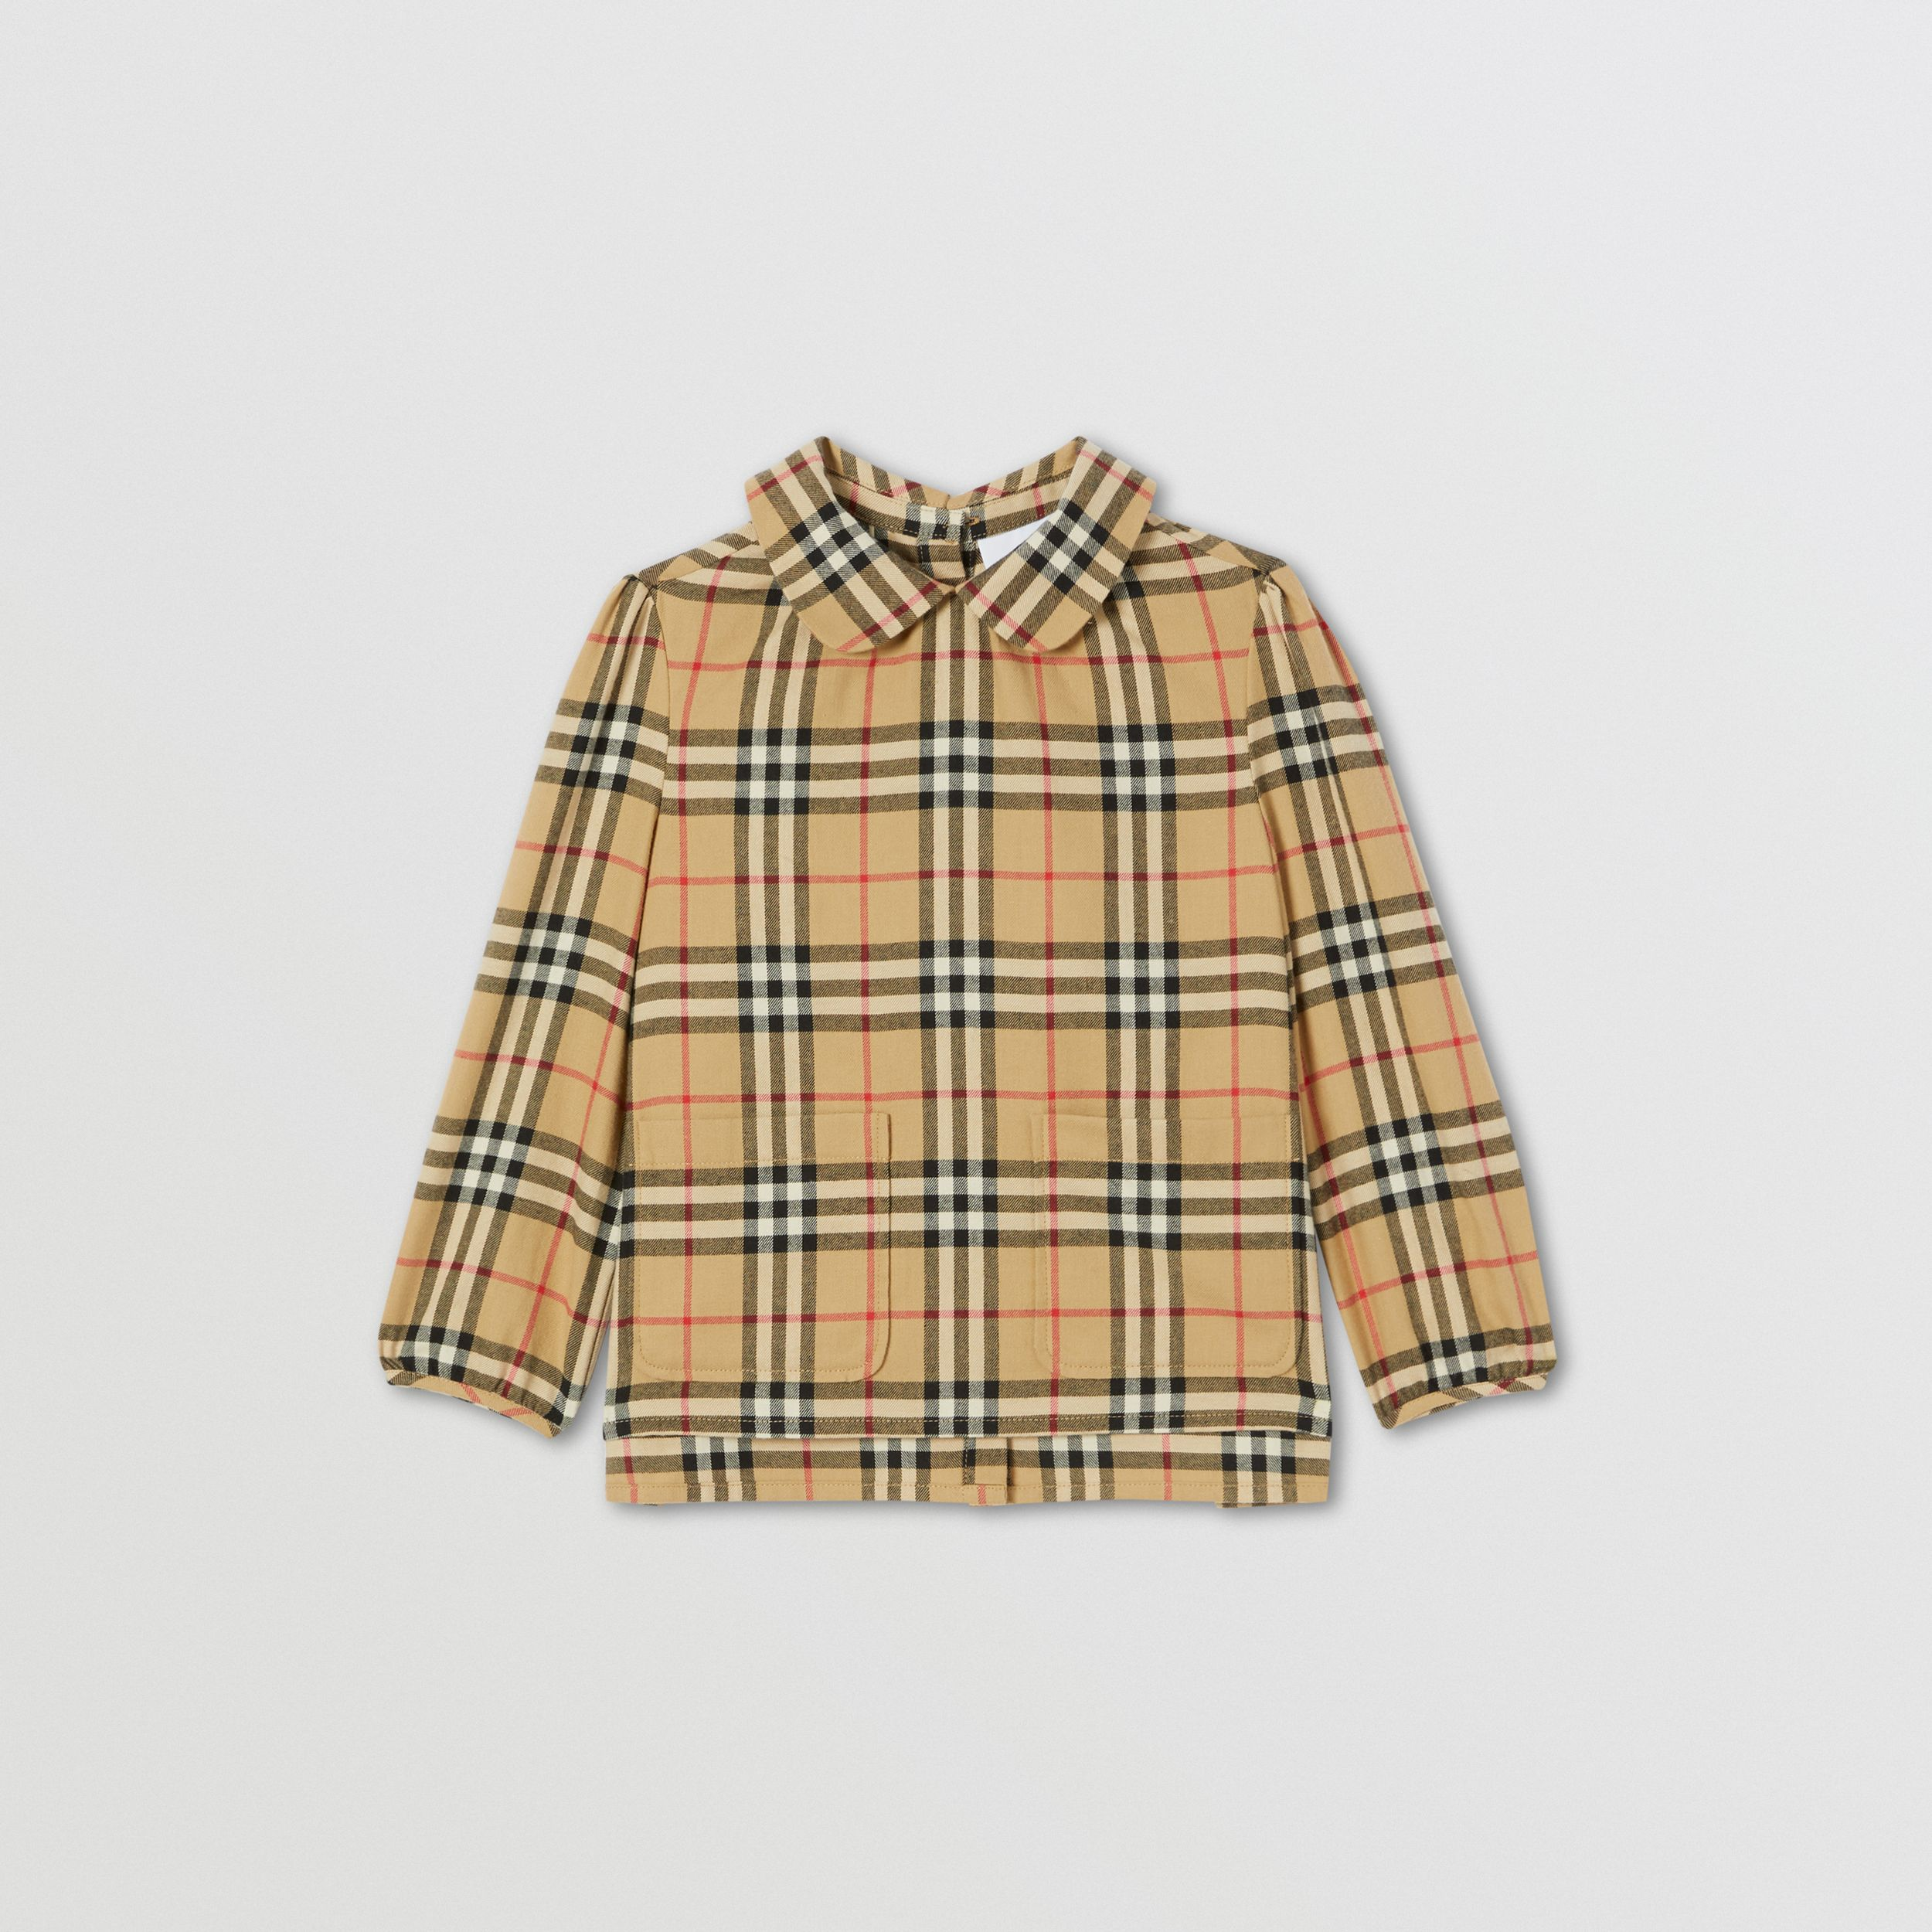 Peter Pan Collar Vintage Check Cotton Blouse | Burberry Australia - 1